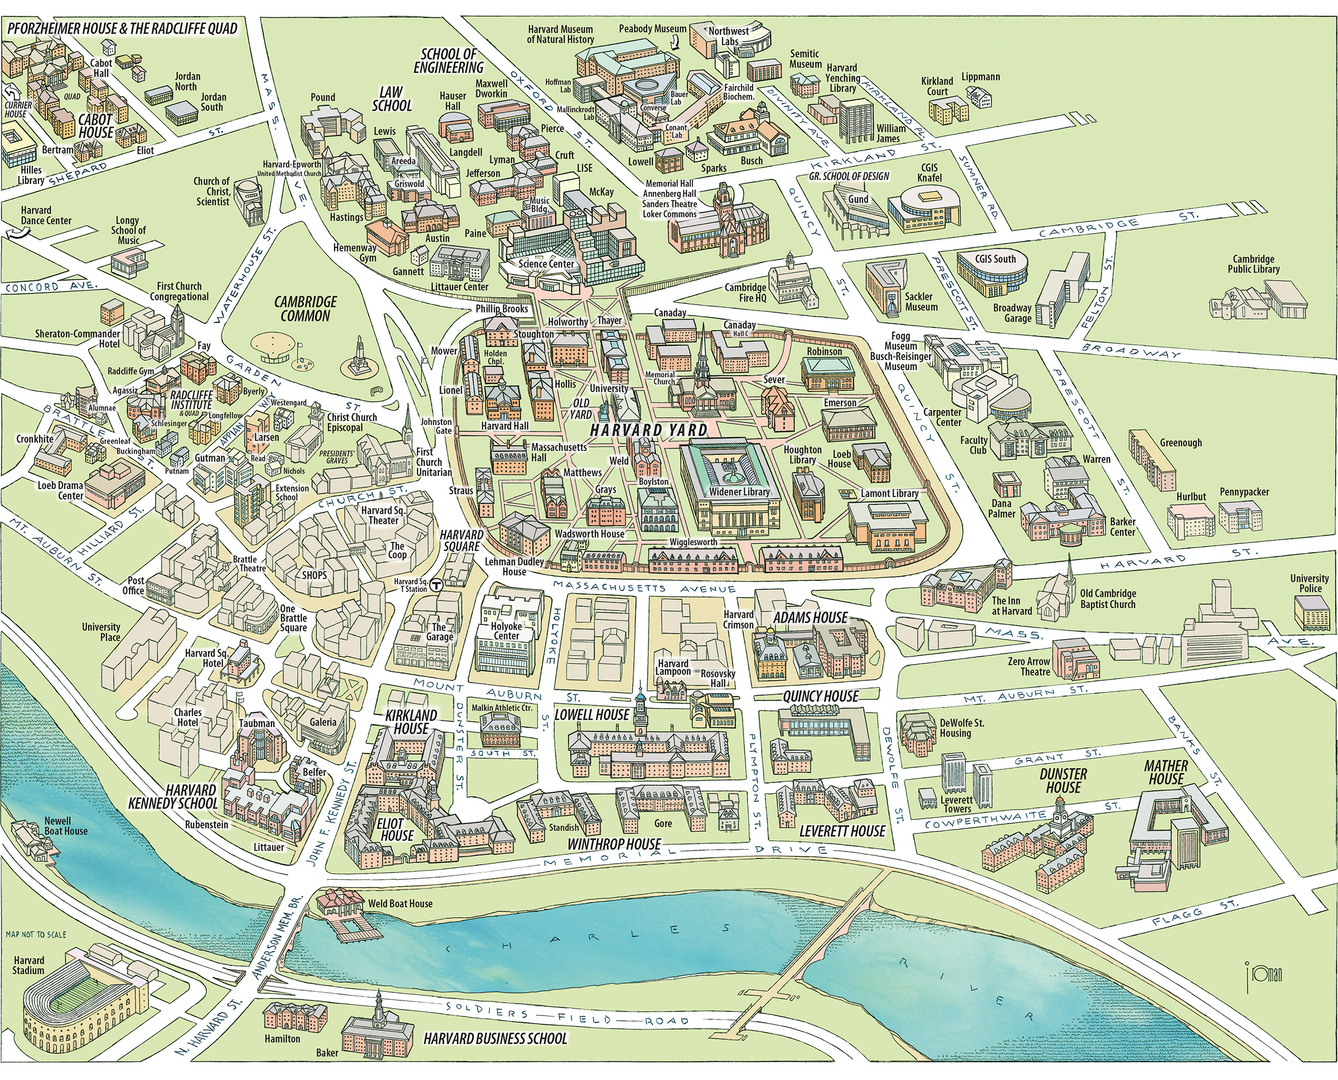 Boston University Campus Map Map And Directions College Of - Map of harvard university